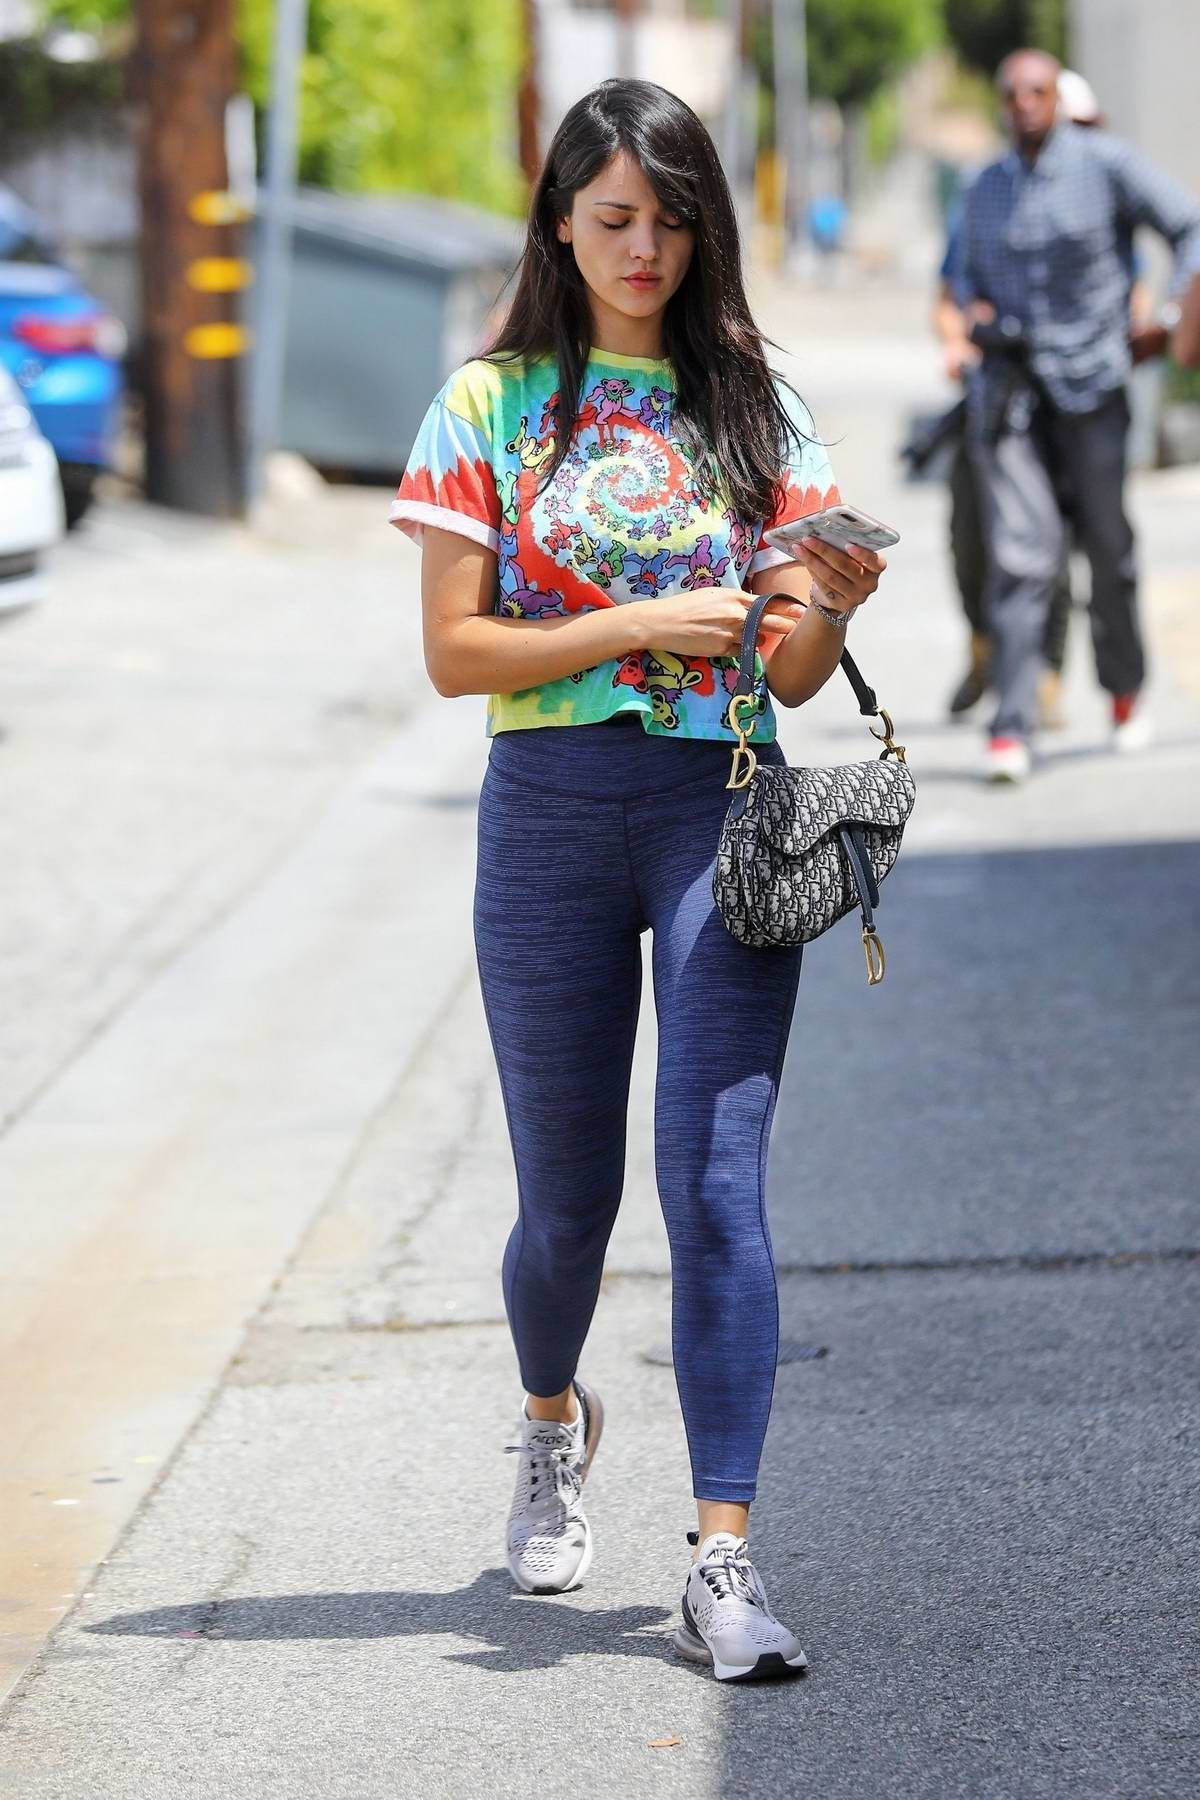 Eiza Gonzalez wears a colorful tie-dye top and blue leggings during a trip to the hair salon in Los Angeles